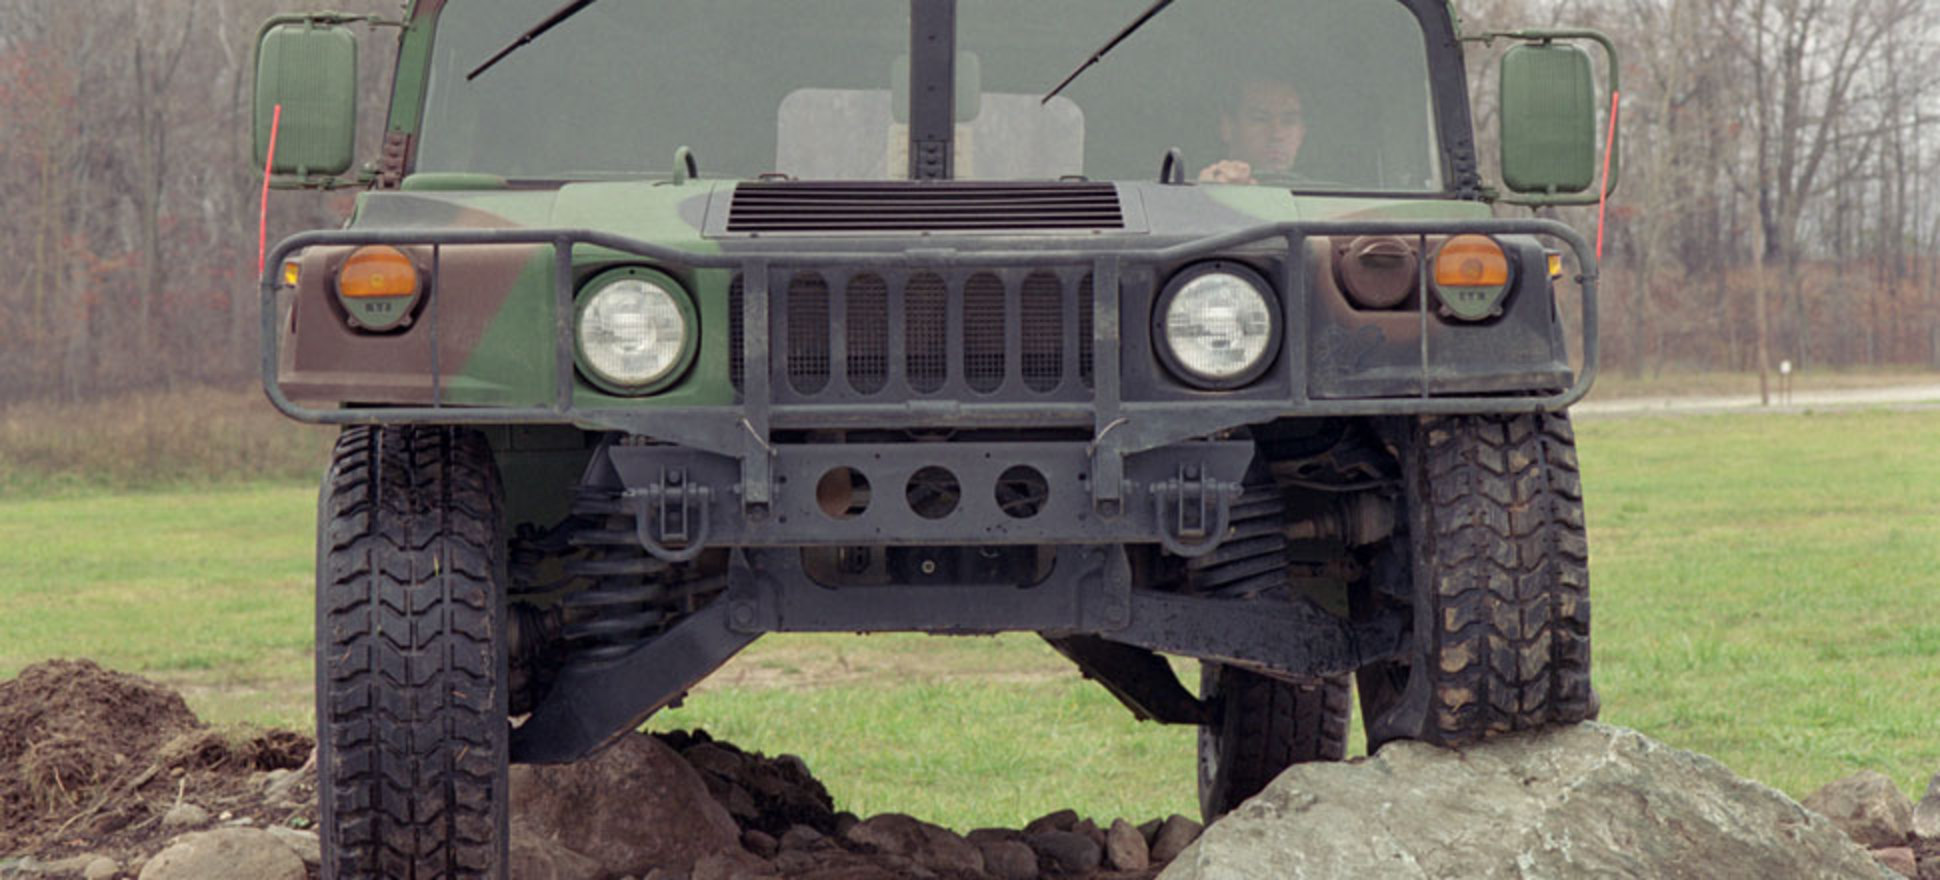 AM General HMMWV M1151: Photo gallery, complete information about ...